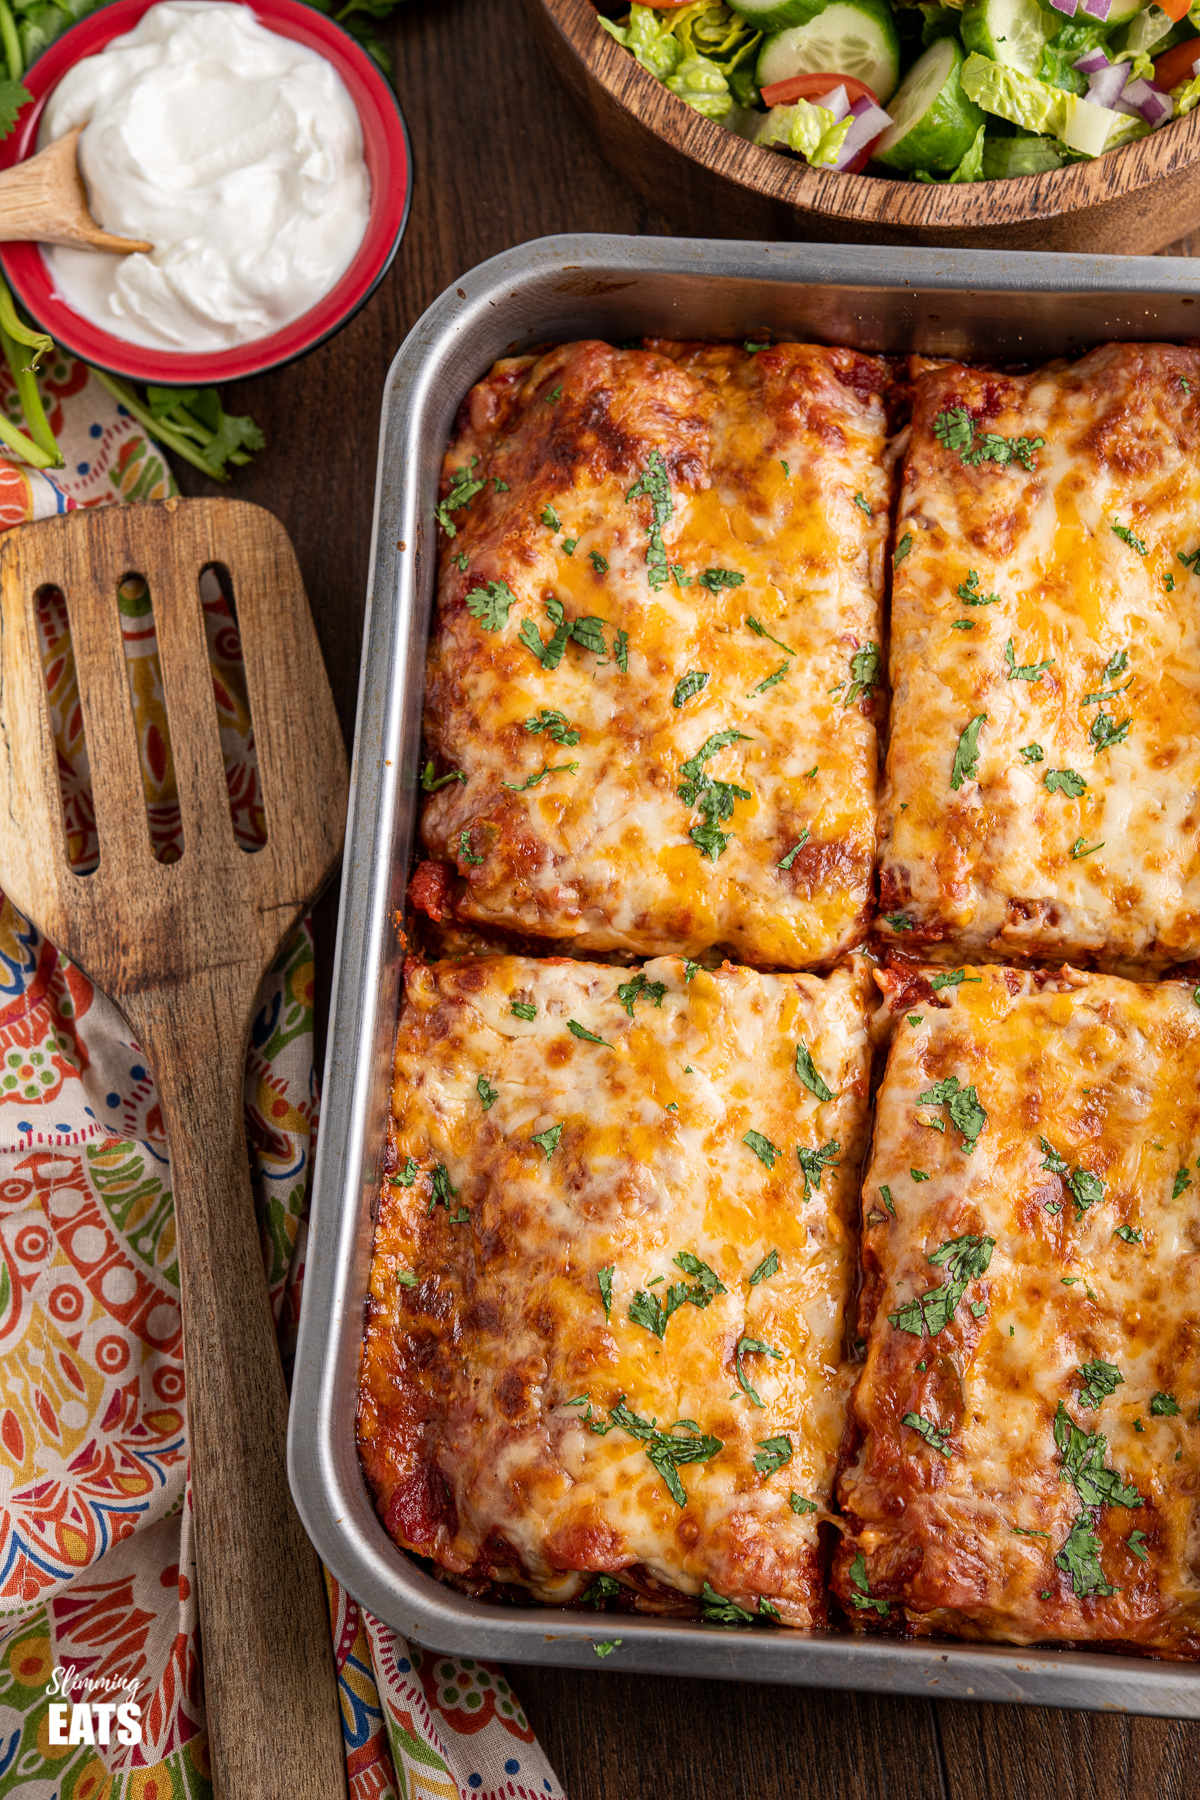 sliced pasta chicken enchiladas in metal baking tray with soured cream and salad in background